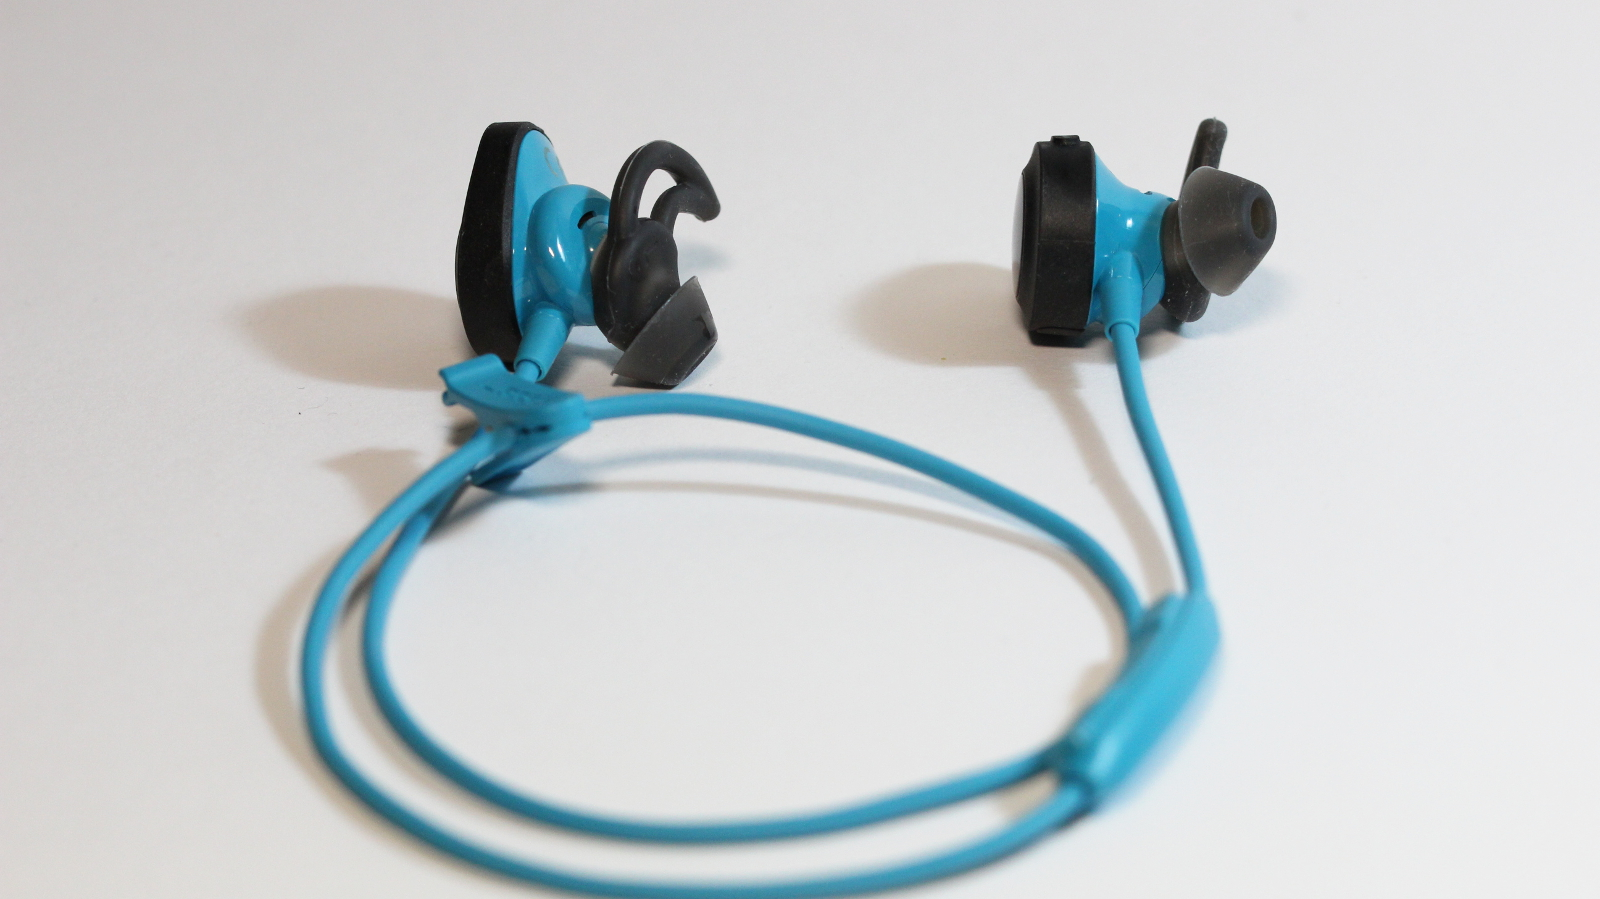 Bluetooth-Sportkopfhörer Bose SoundSport Wireless